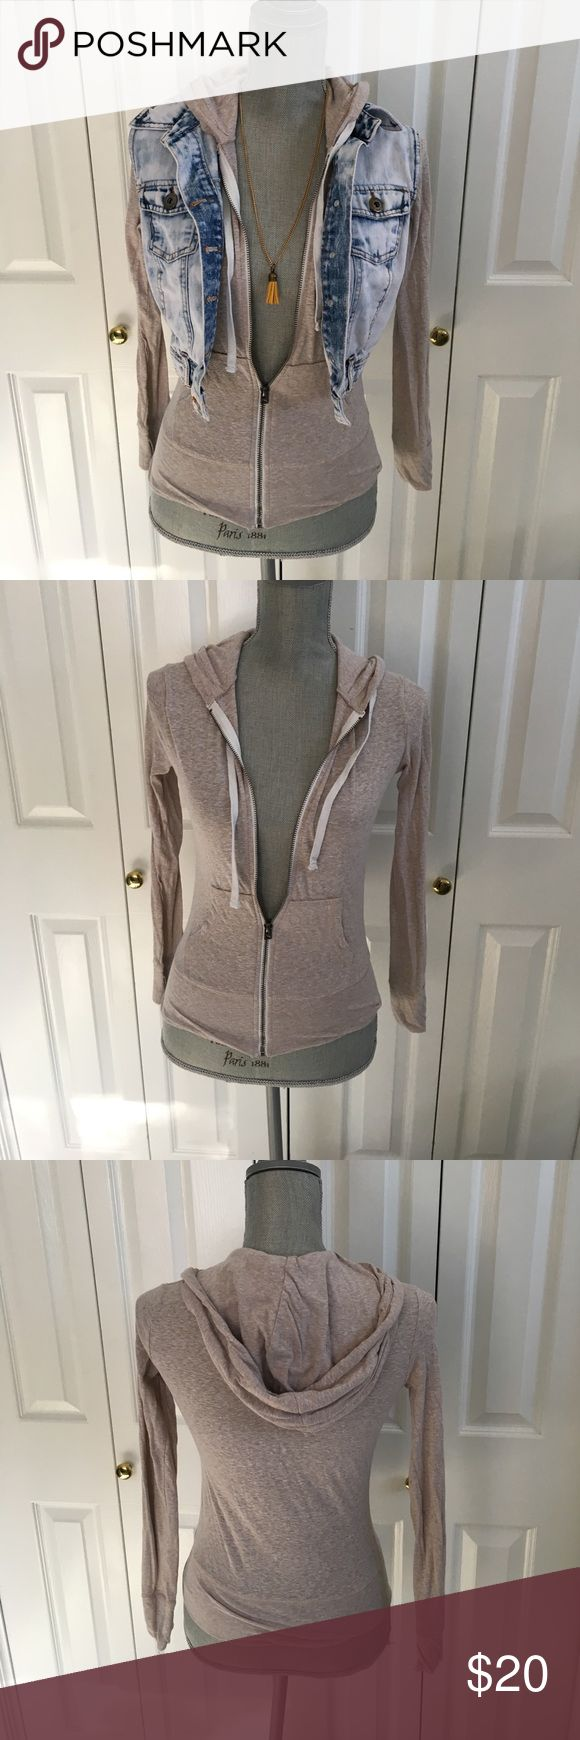 Cream zip up hoodie Adorable zip up hoodie! Neutral color makes it highly versatile. The fabric is breathable and comfortable. Barely worn. Perfect condition! Aeropostale Sweaters